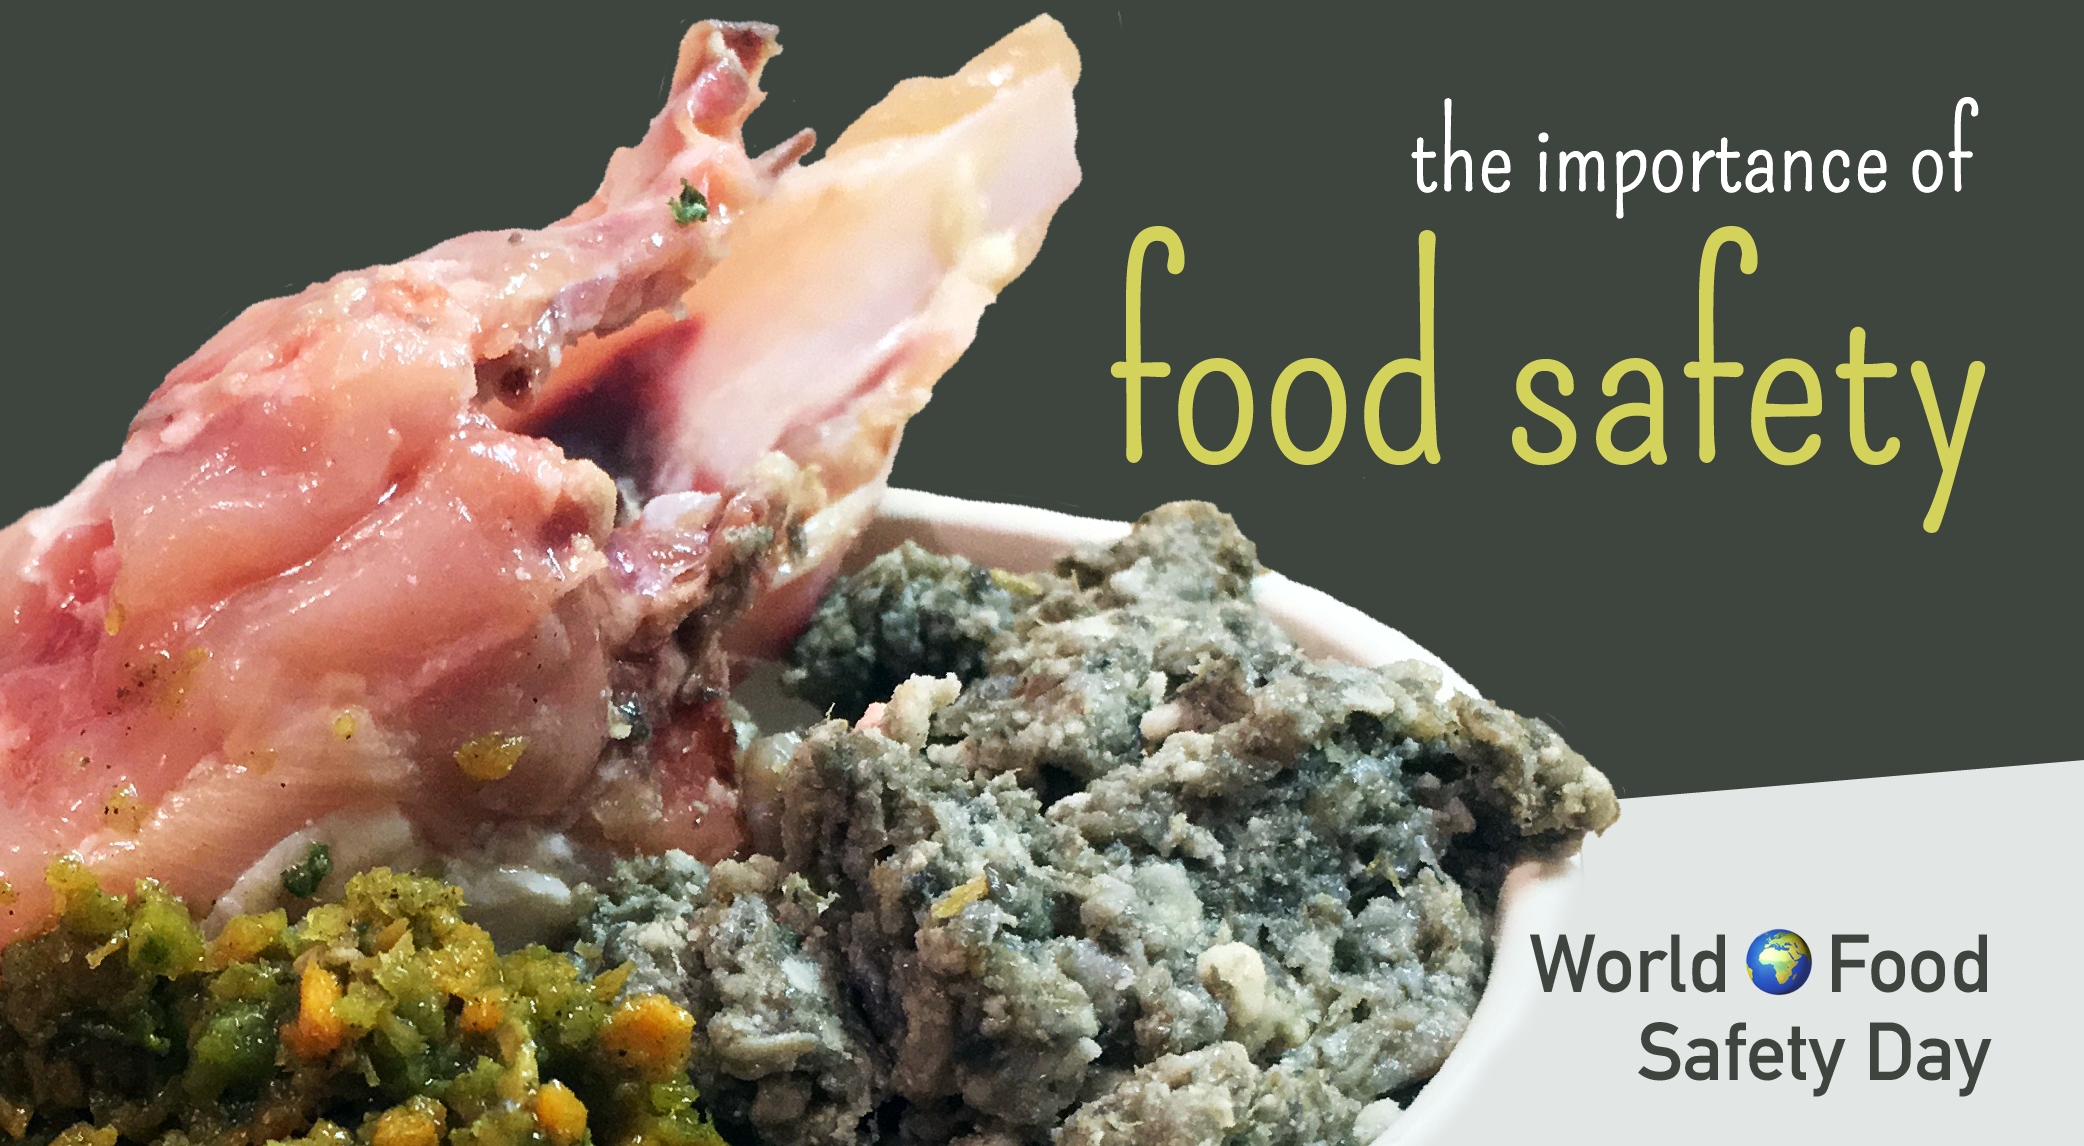 We care about… World Food Safety Day